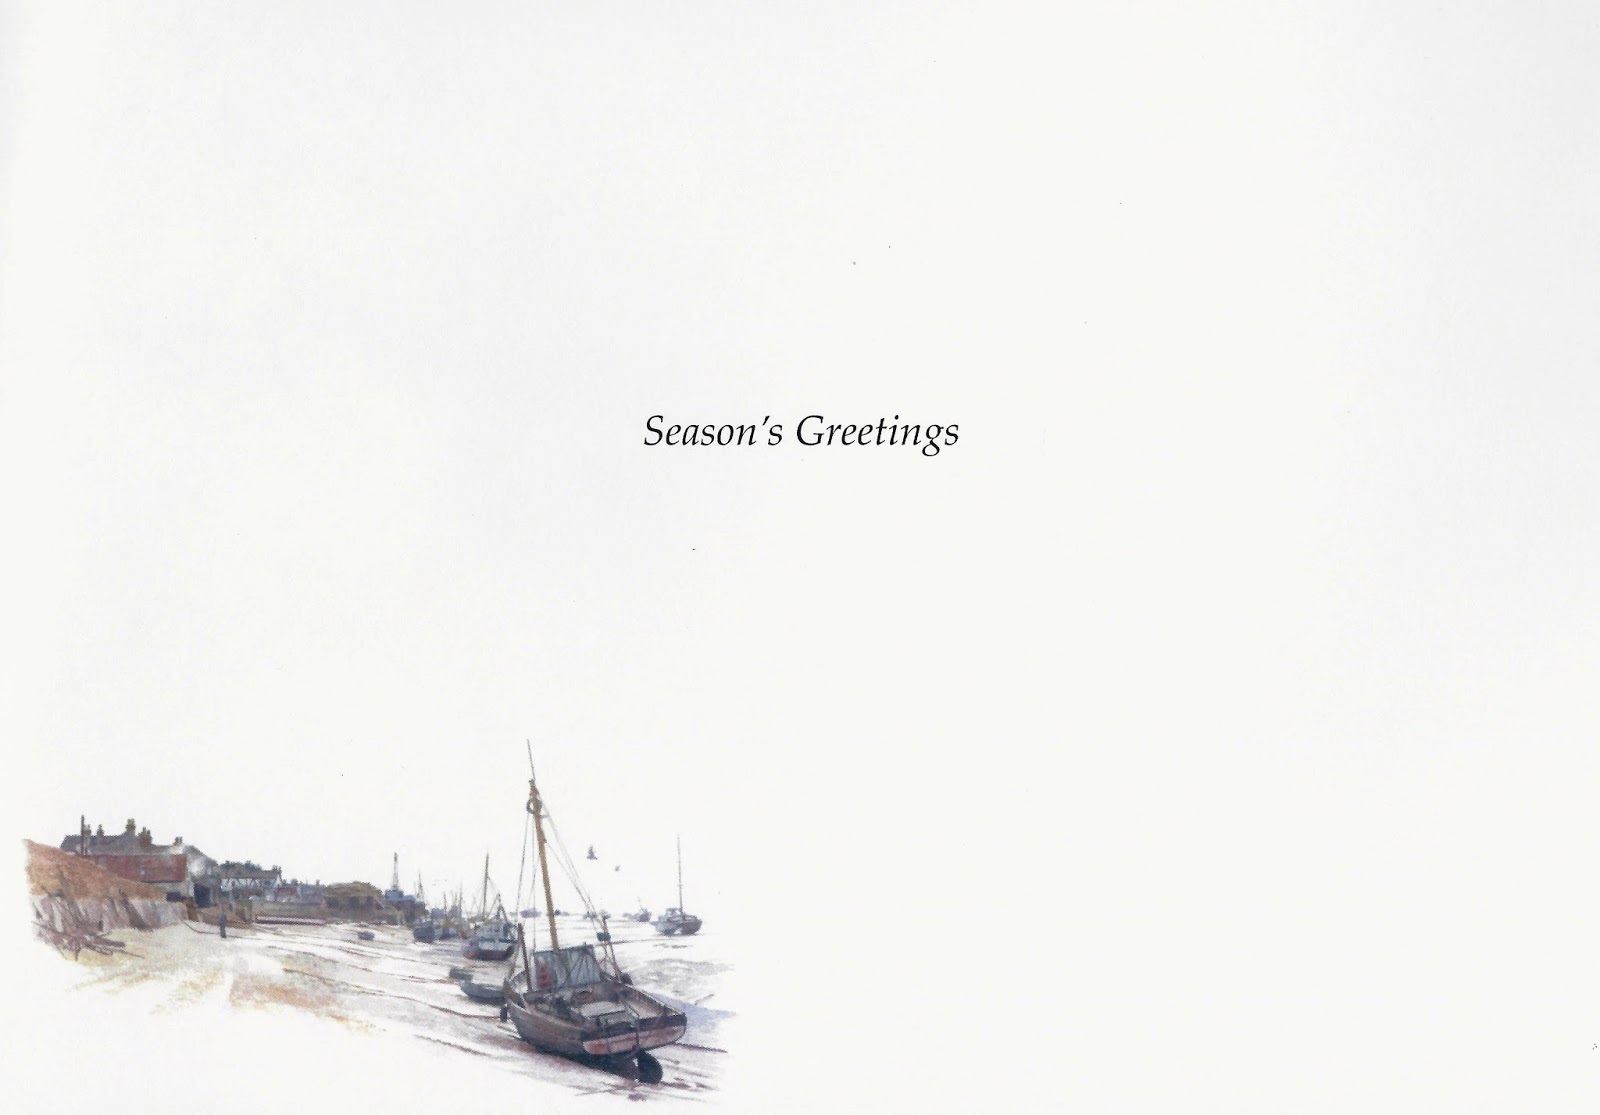 Endeavour Trust: 2017 Christmas Card featuring Still from Dunkirk